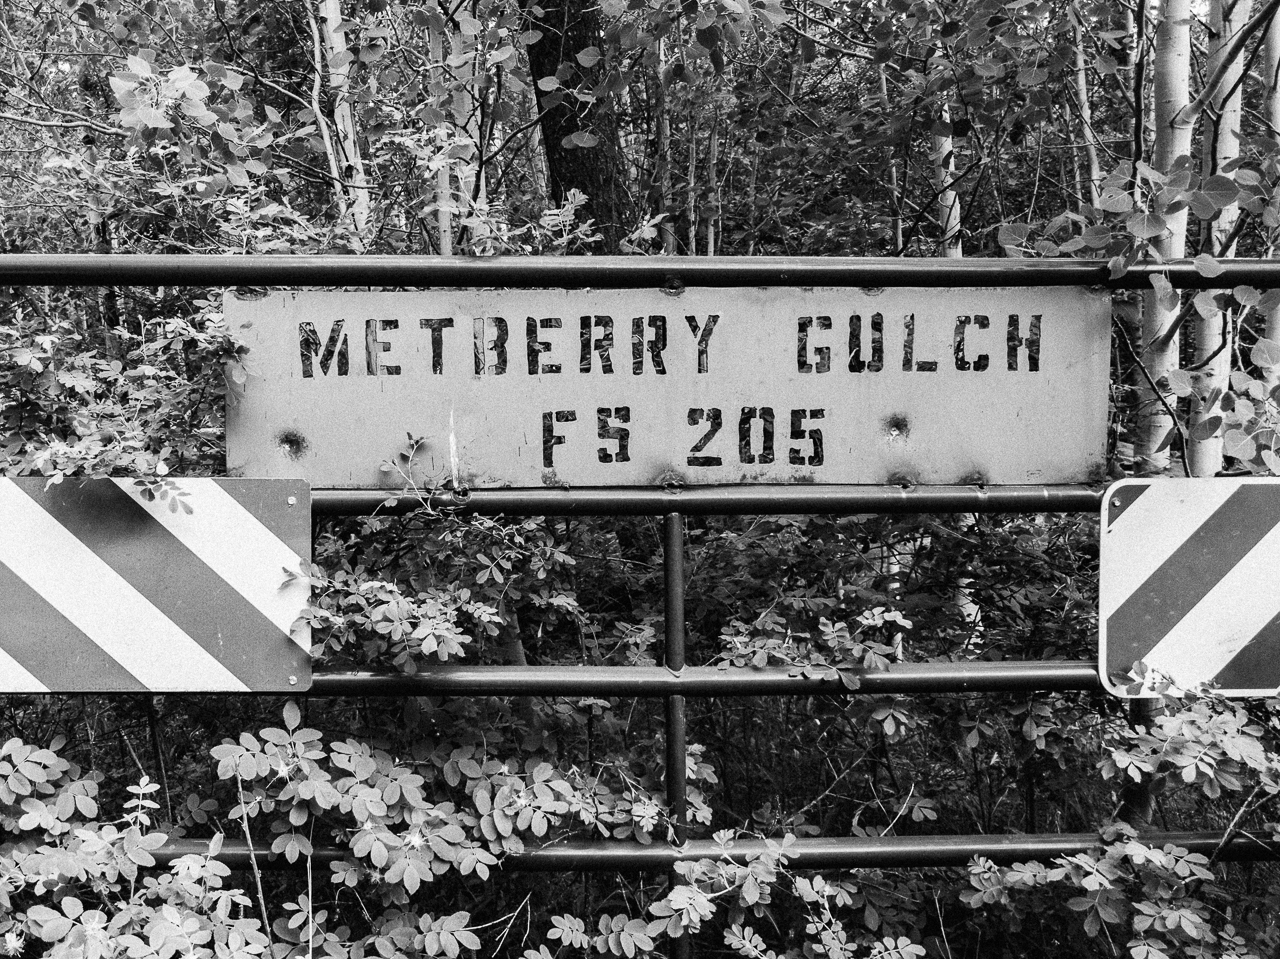 Day 189 - 365 Day B&W Photo Challenge - The Metberry Gulch Forest Service Road 205 sign- Google Pixel 3, VSCO Fujifilm Neopan 400 Film Simulation